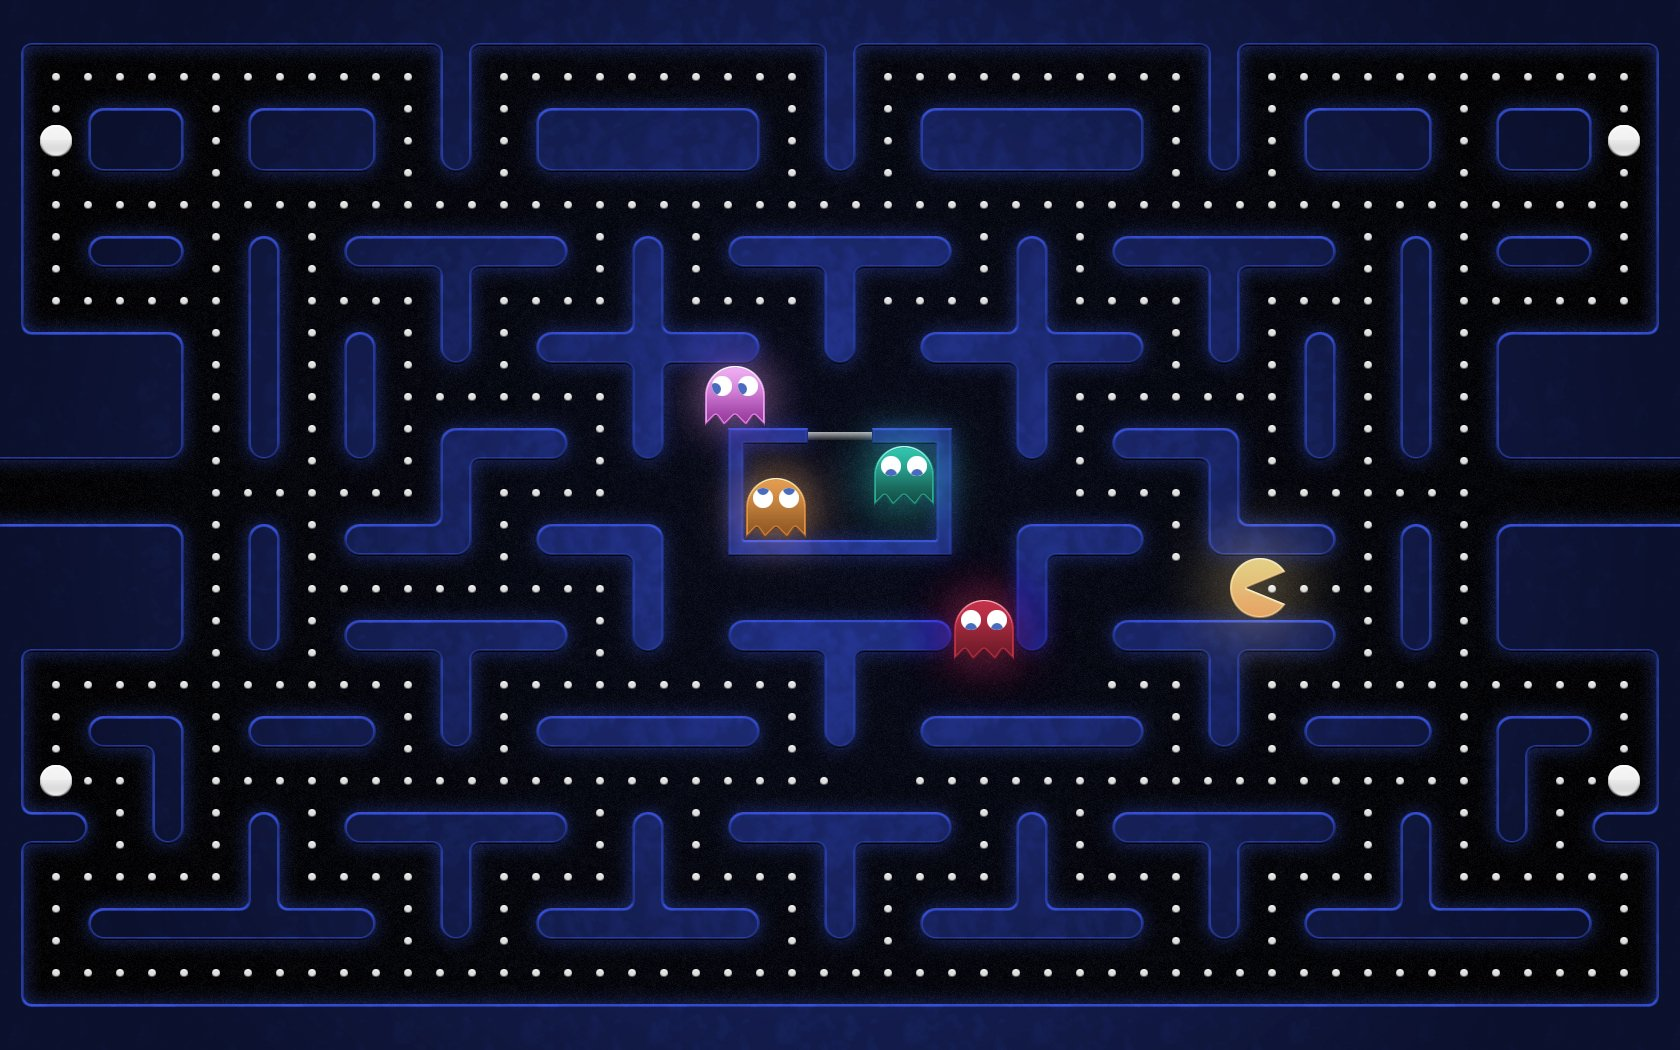 Pac Man Images Icons Wallpapers and Photos on Fanpop 1680x1050